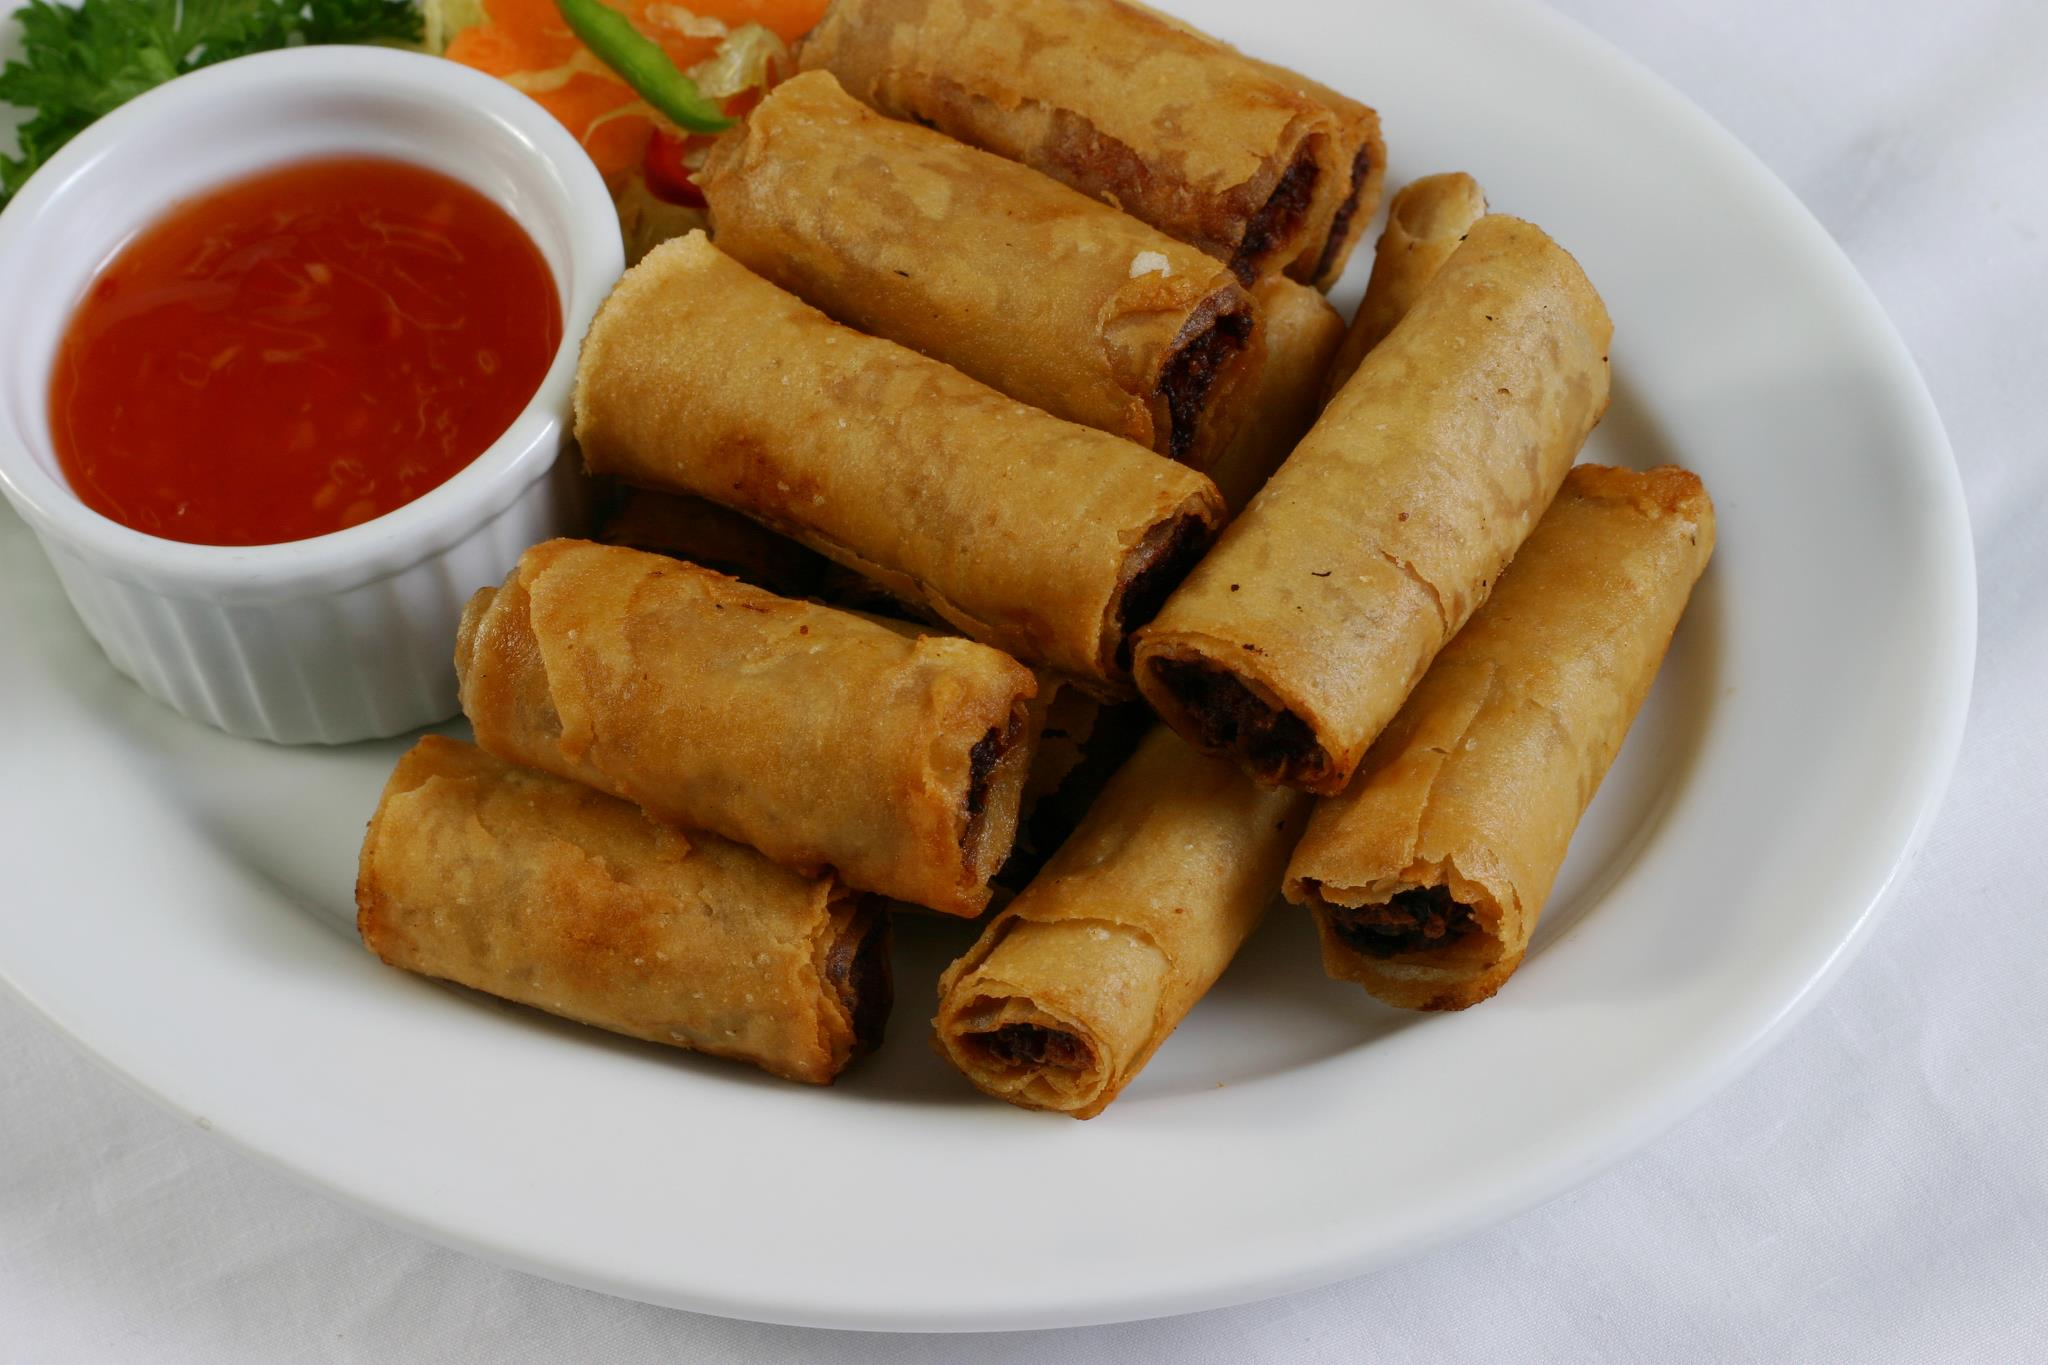 Philippines food lumpia | The Center for Southeast Asian Studies